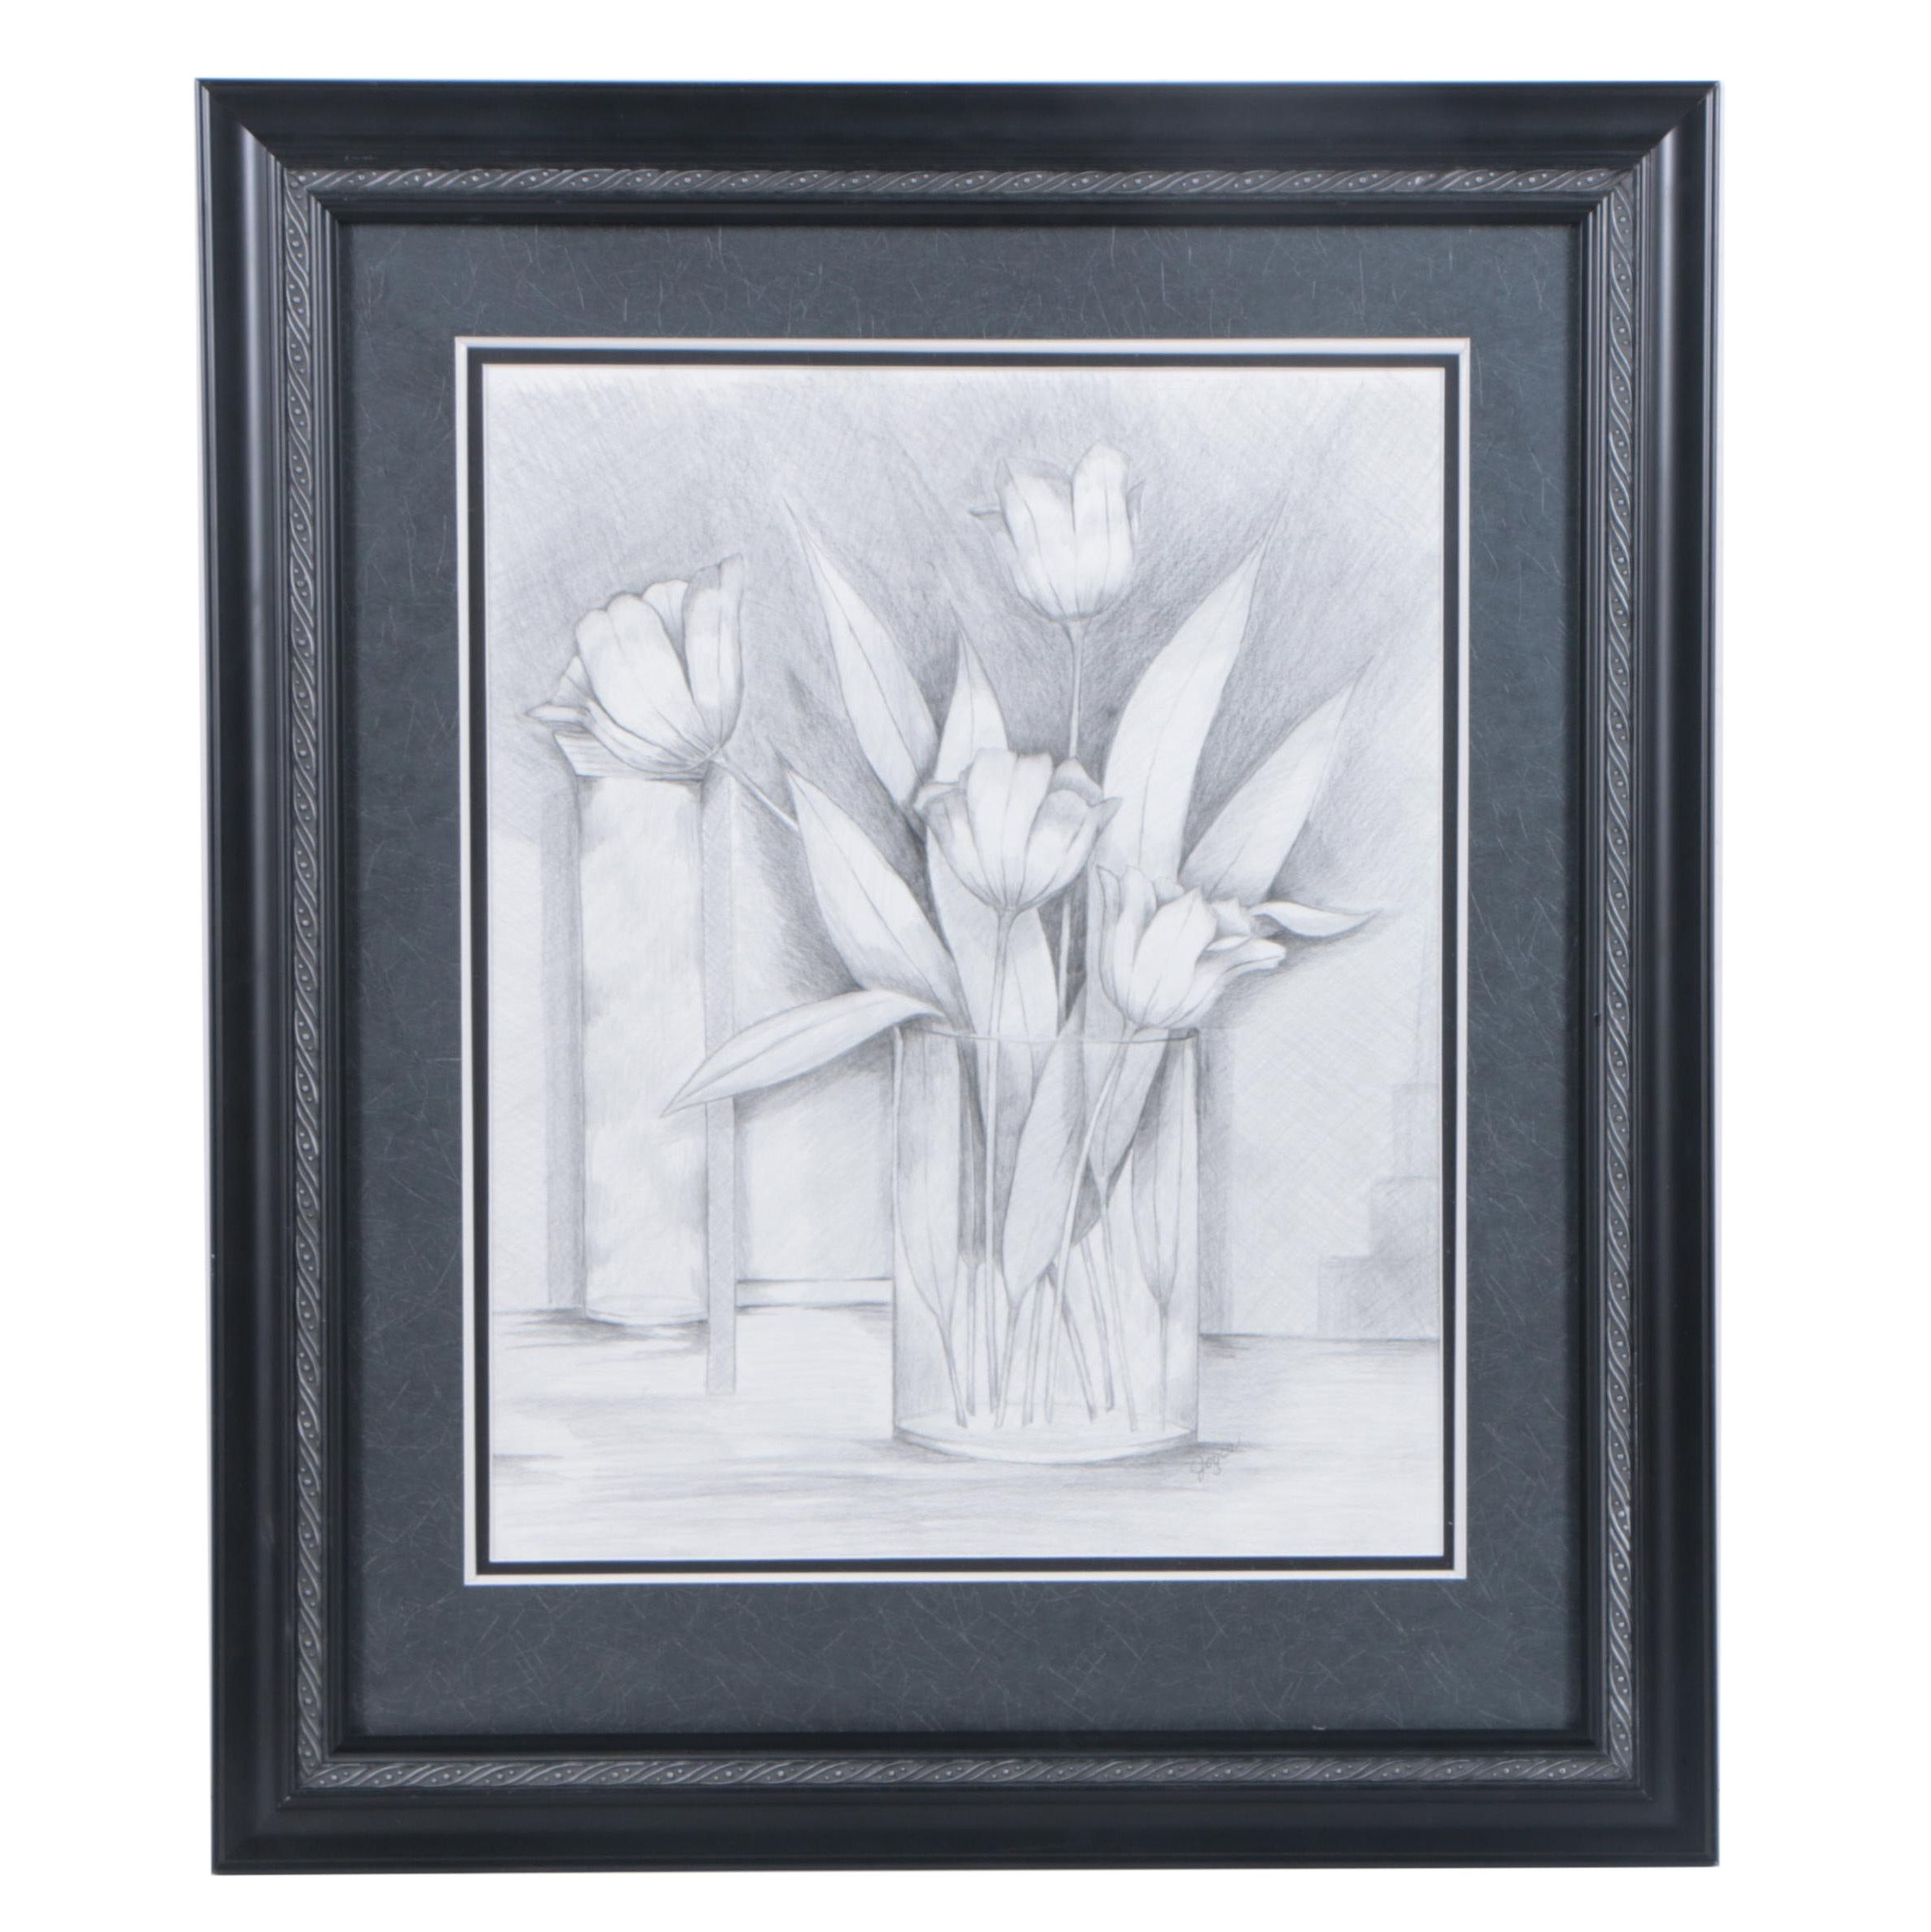 Joyce Graphite Drawing on Paper of Flowers in Vase